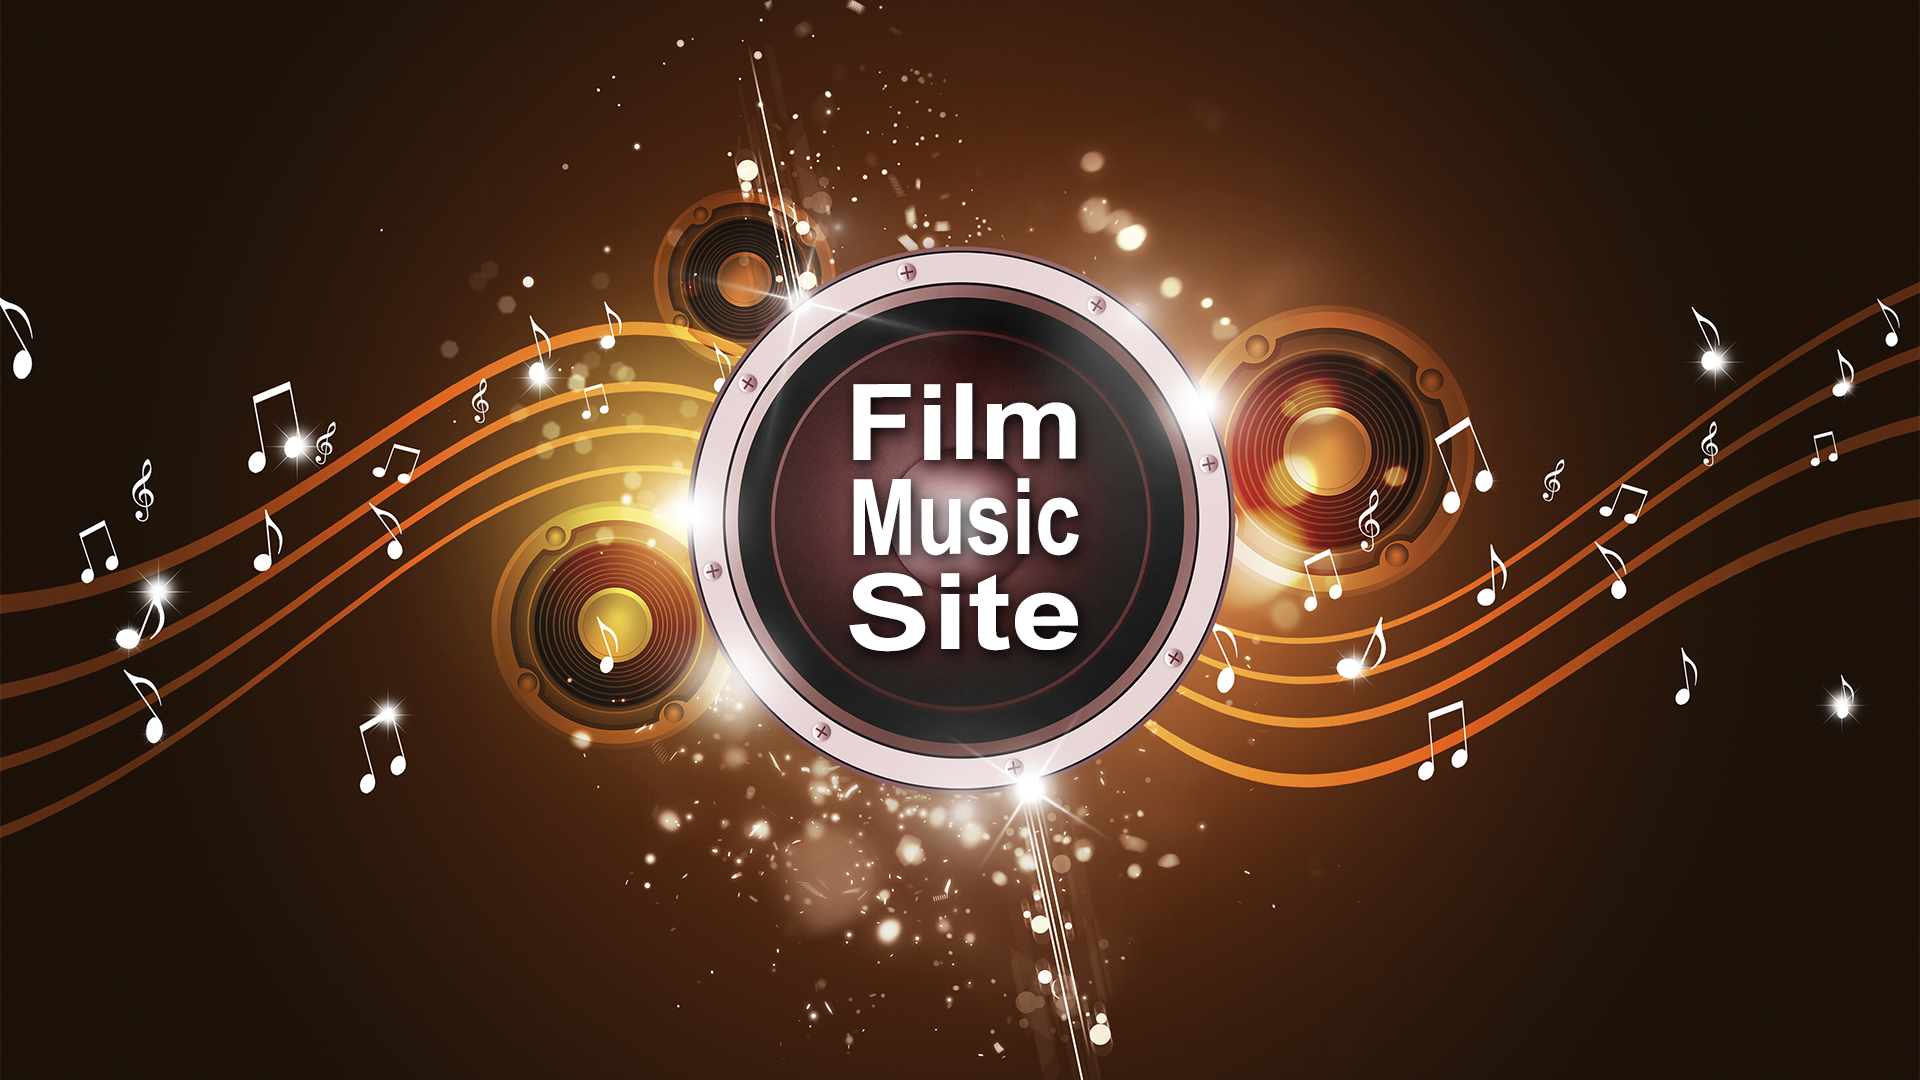 film music site - about us